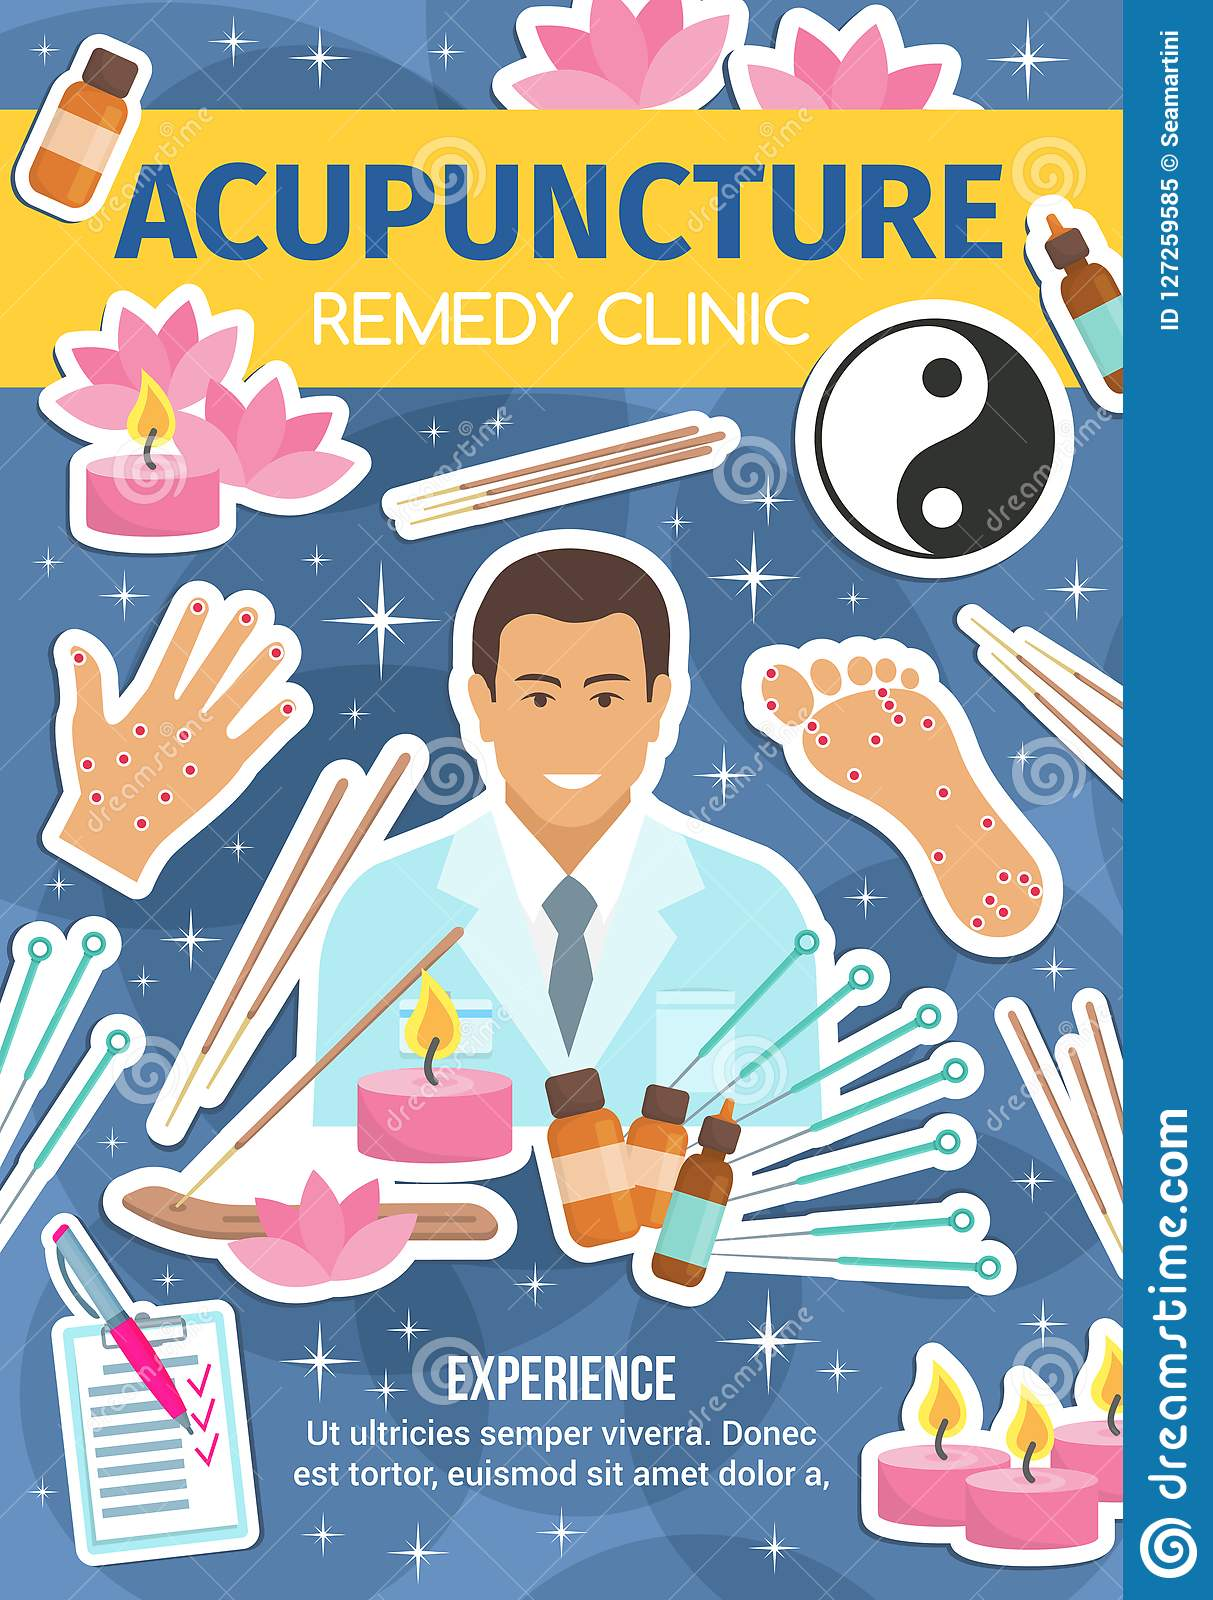 Acupuncture Remedy Clinic, Spa Salon And Doctor Stock Vector